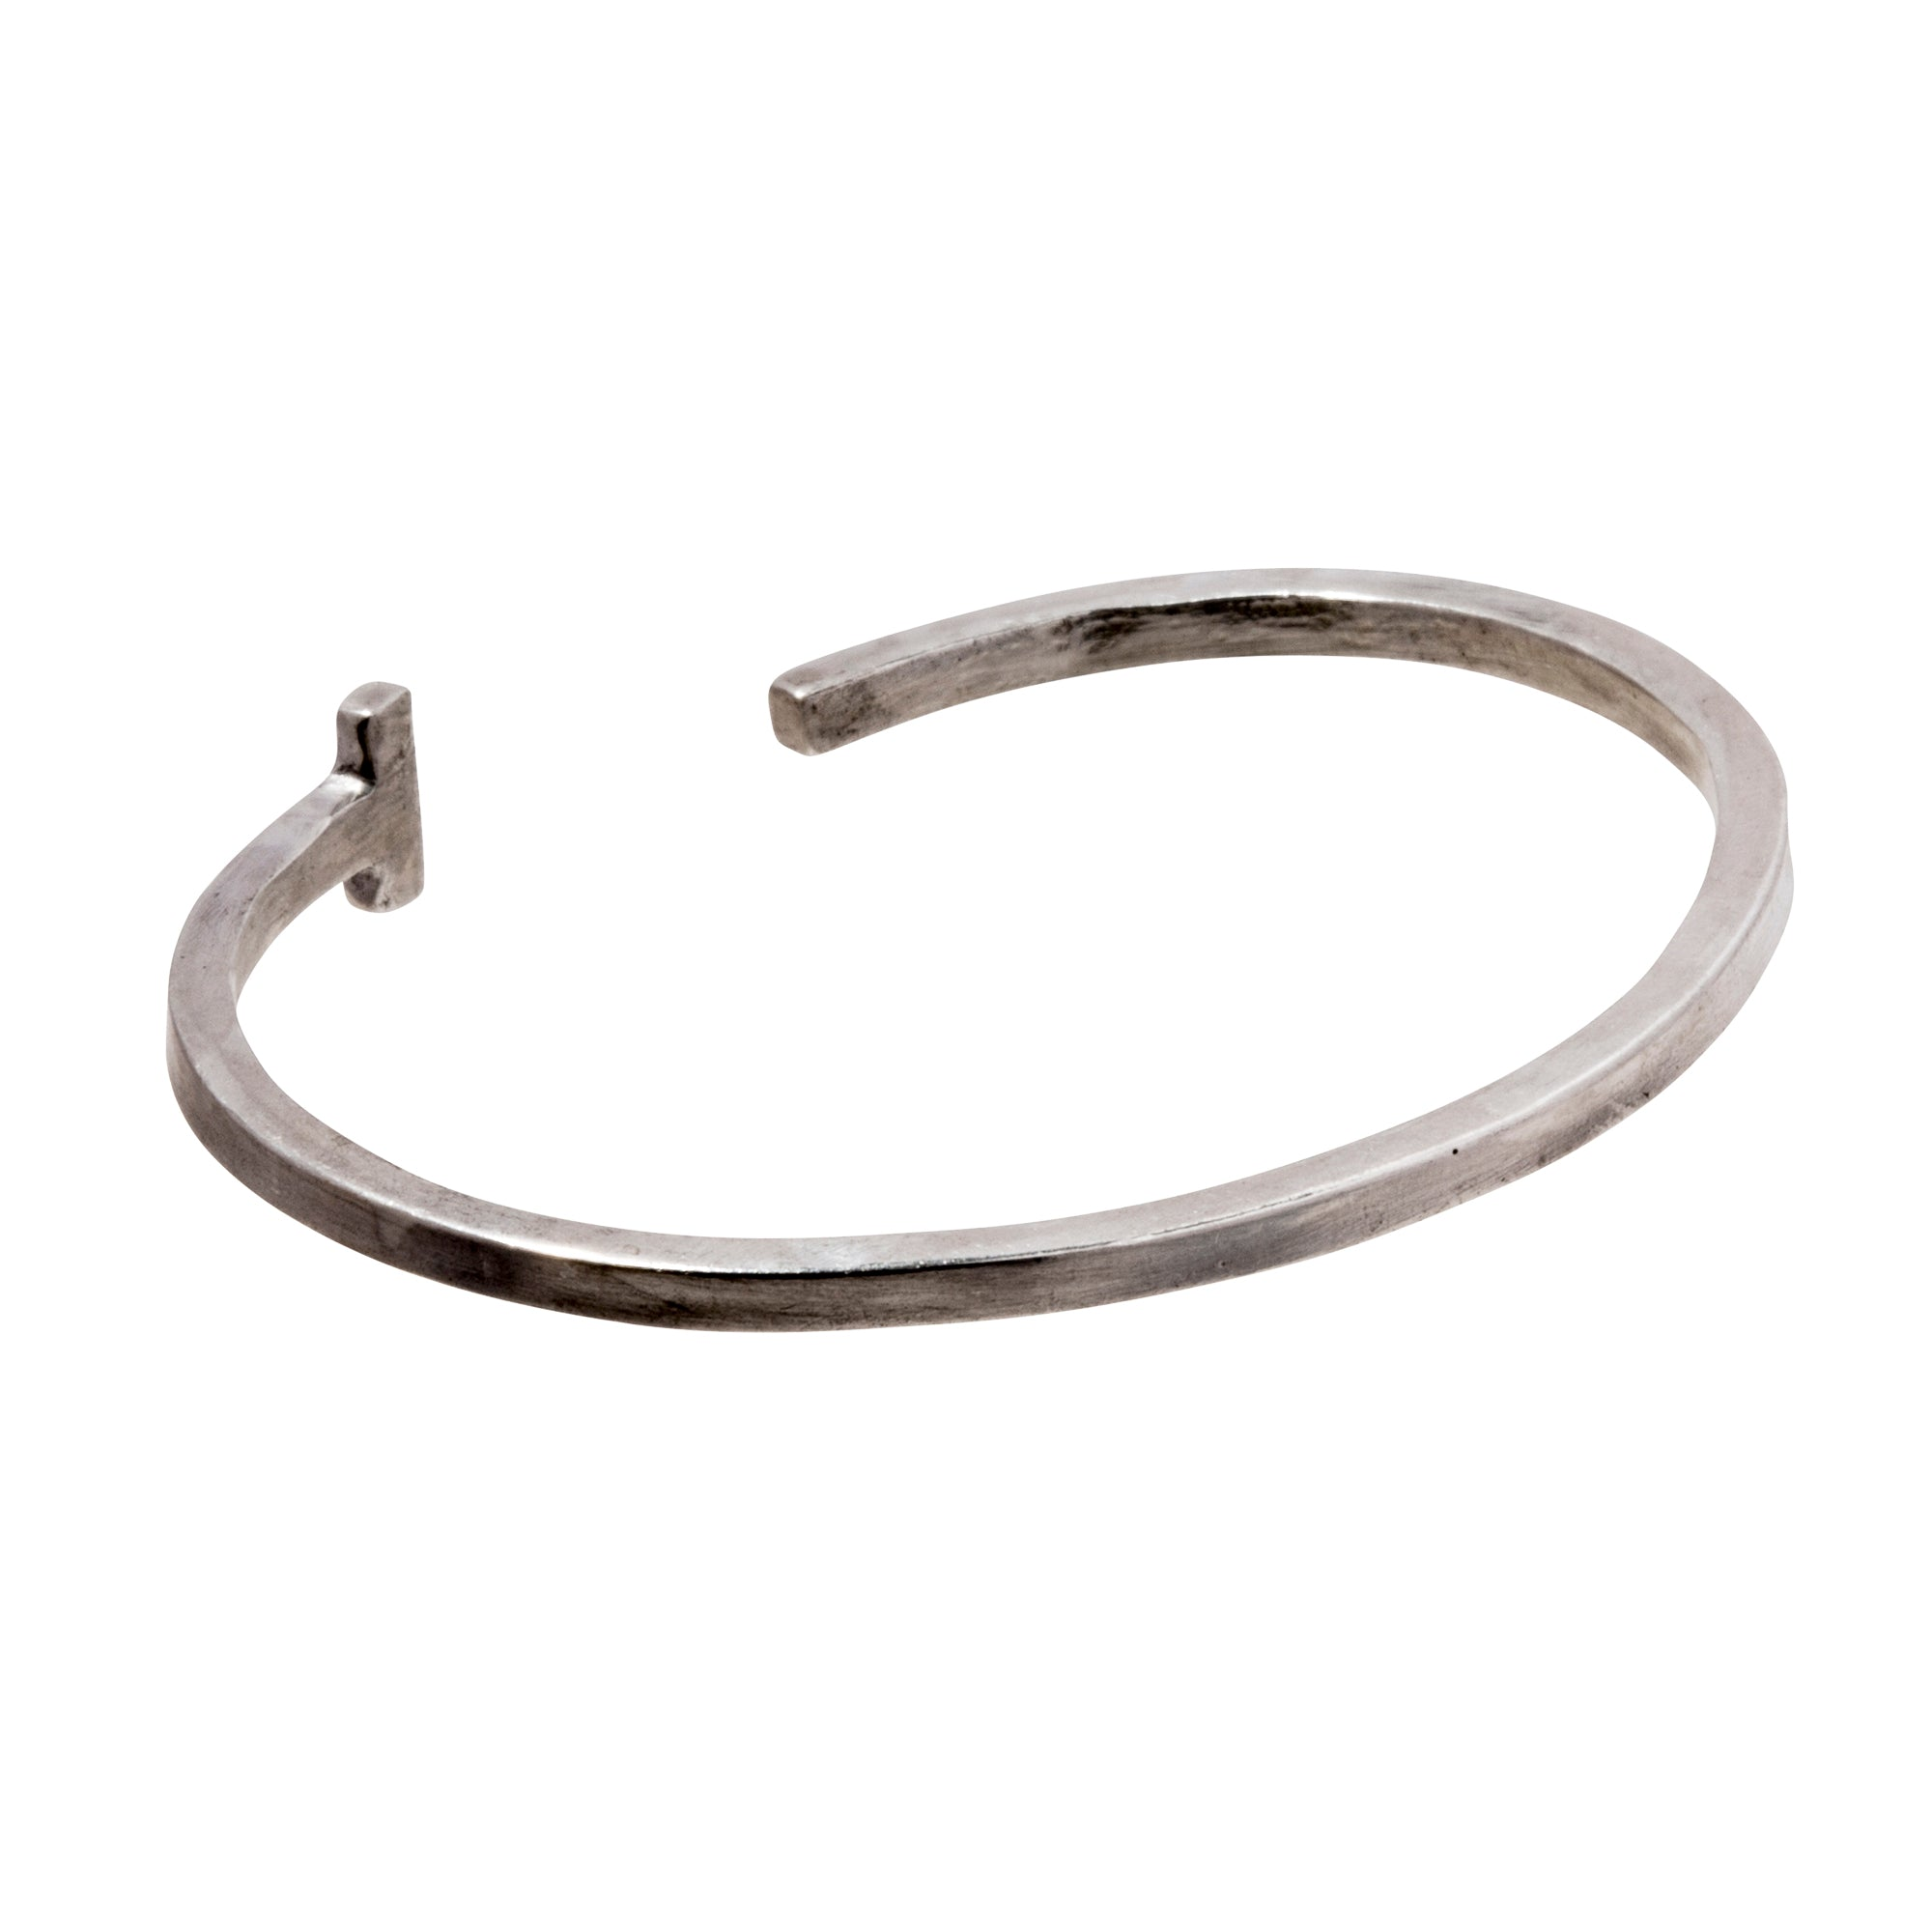 Silver Square T Cuff by James Colarusso for Broken English Jewelry